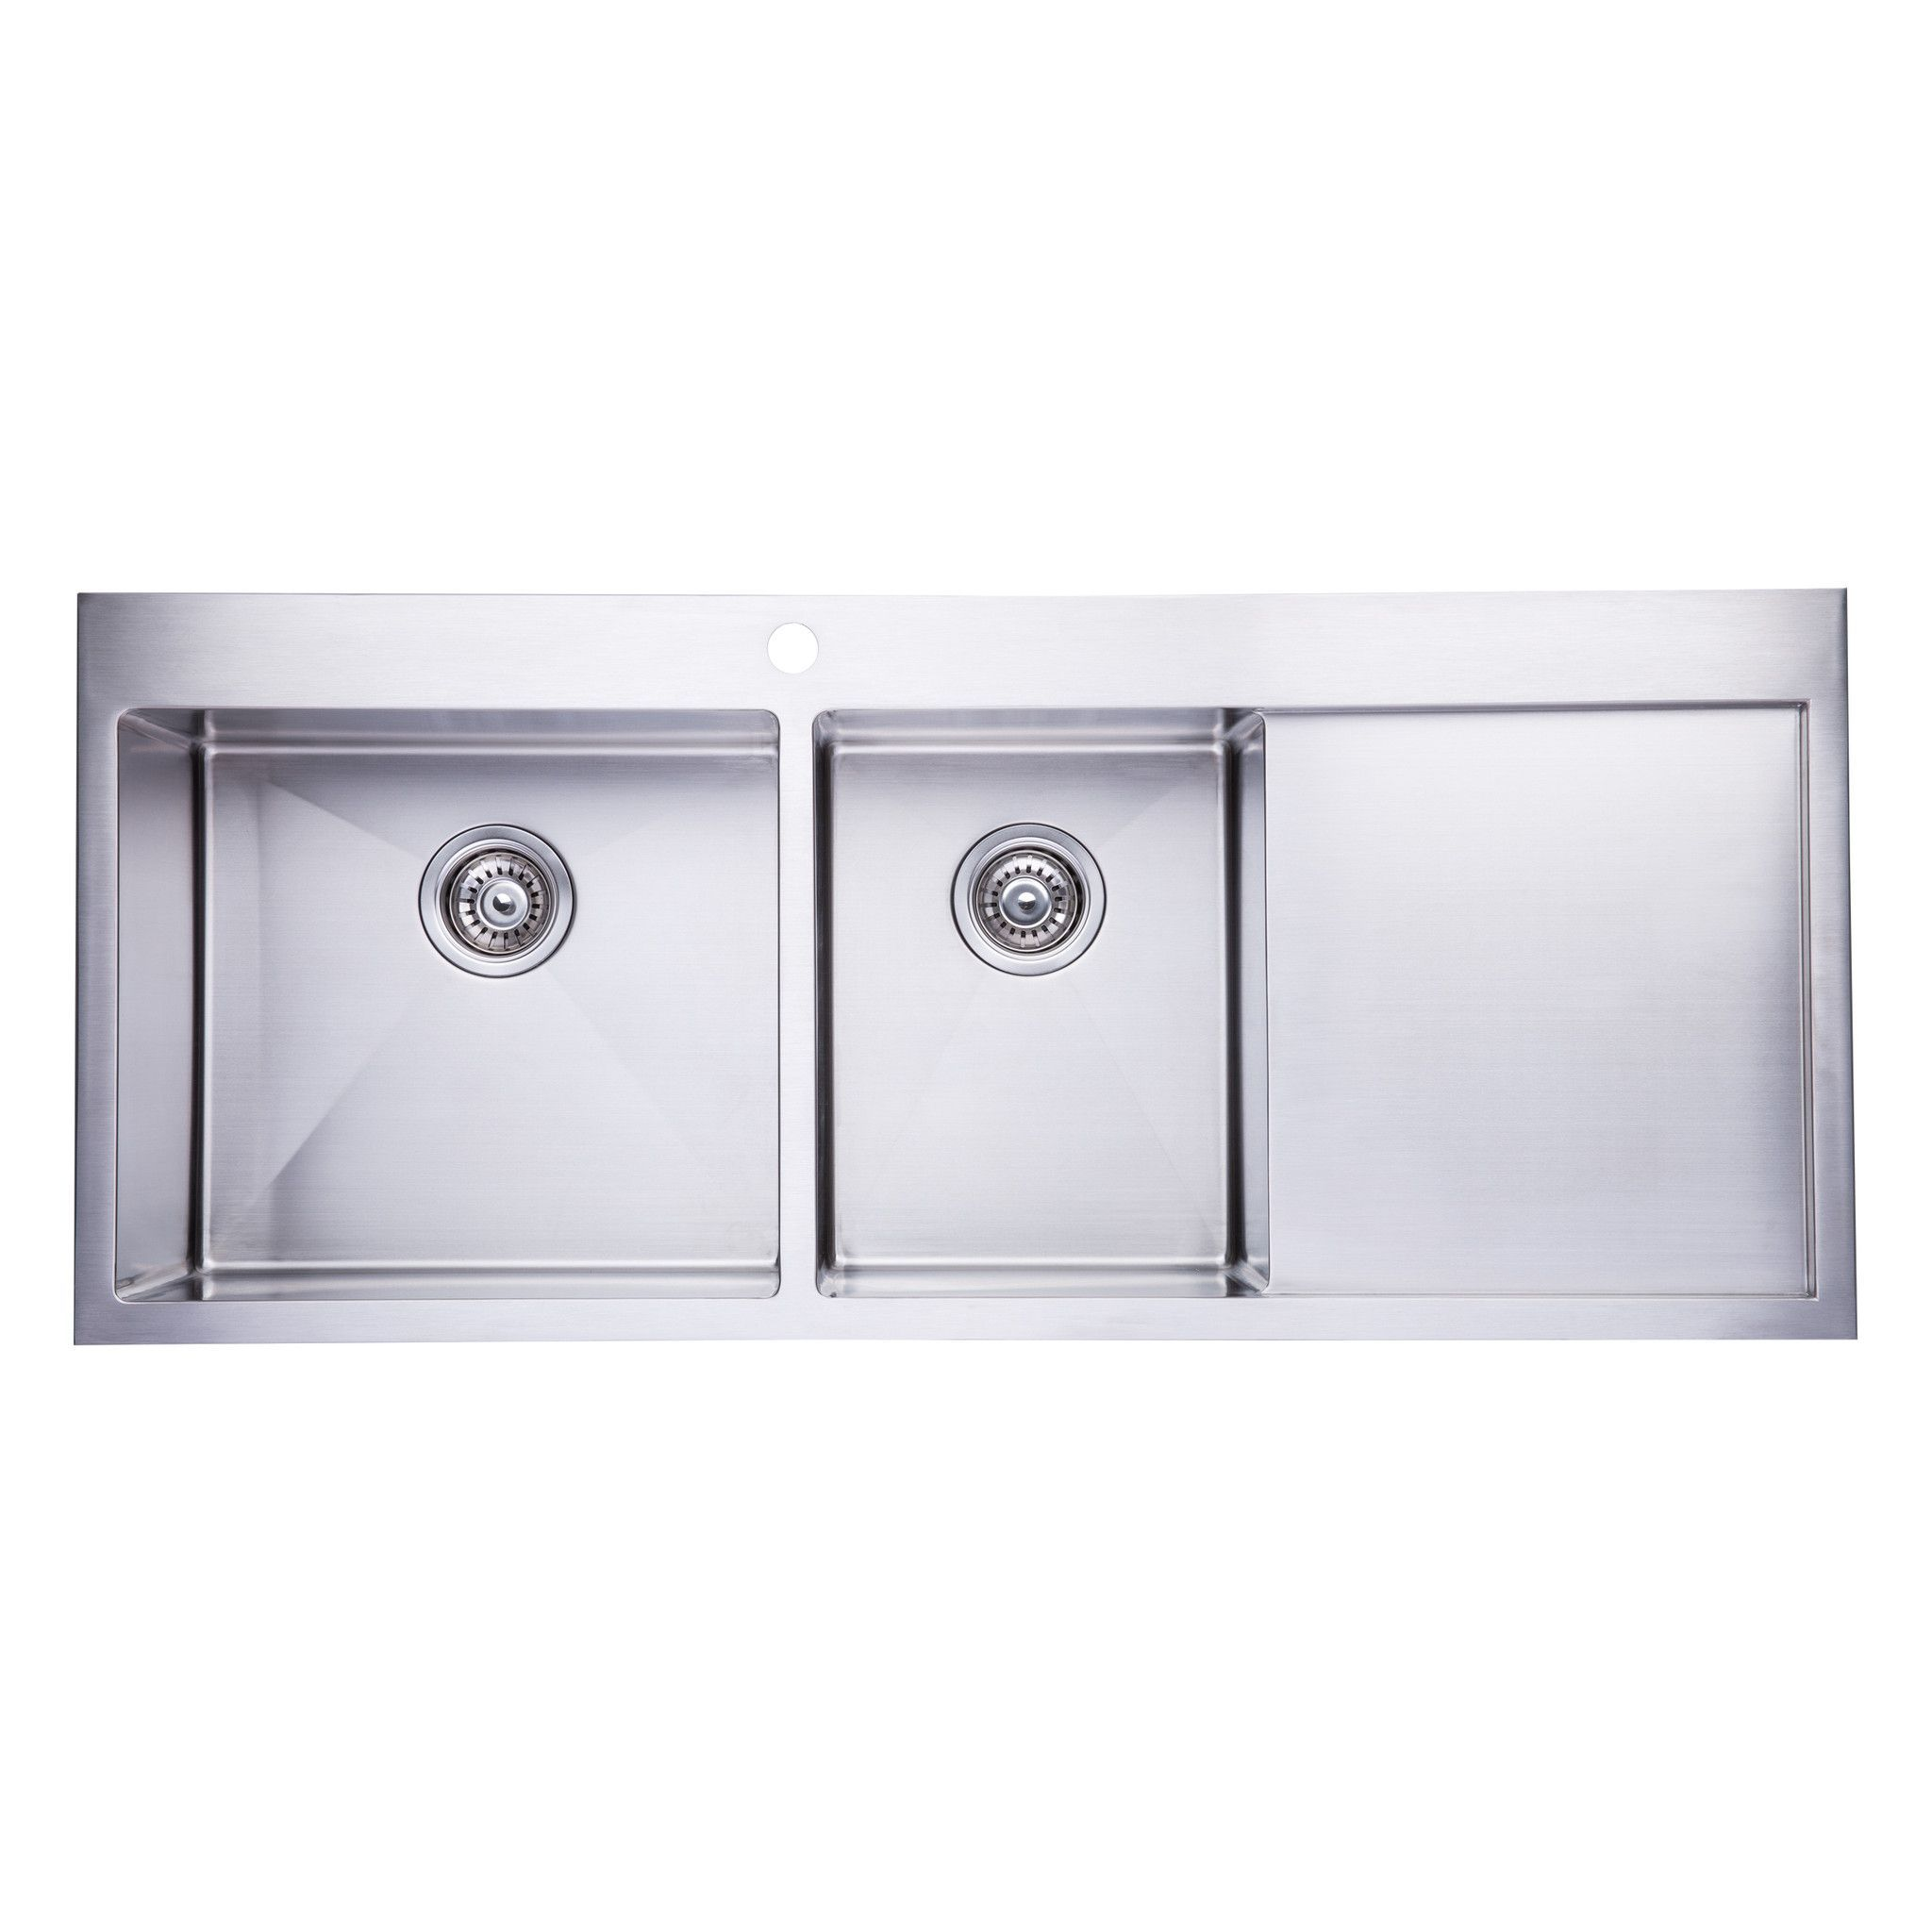 Bai 1235 Stainless Steel 16 Gauge Kitchen Sink Handmade 48 Inch